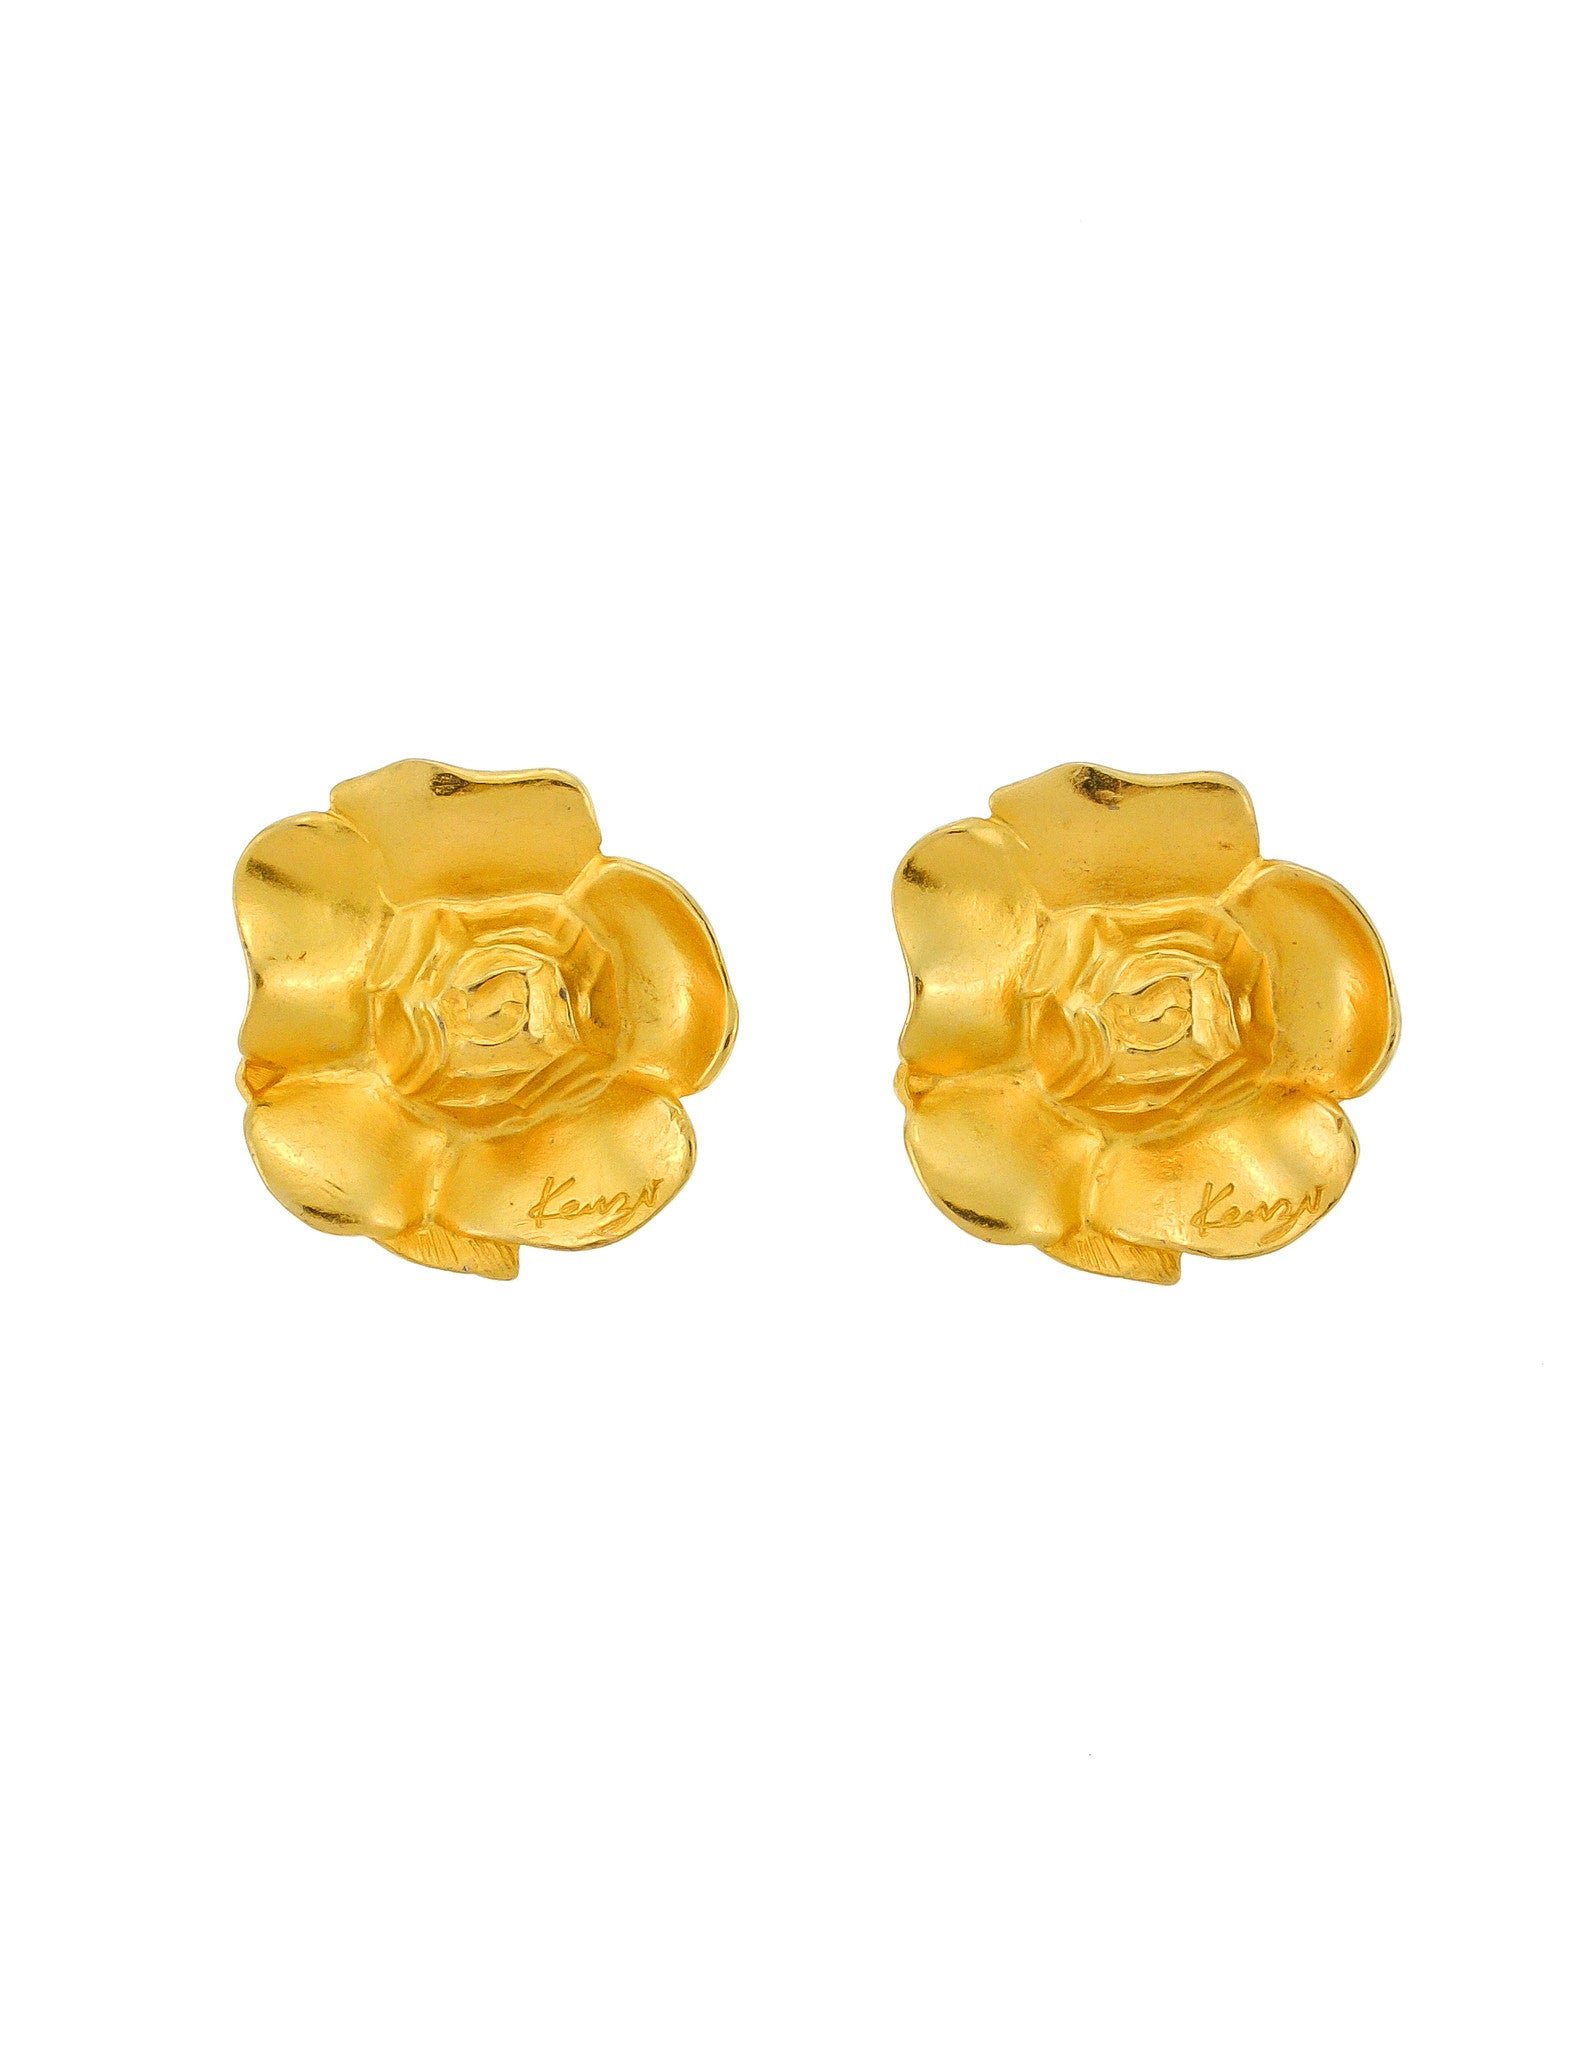 Kenzo Vintage Gold Flower Earrings - Amarcord Vintage Fashion  - 1